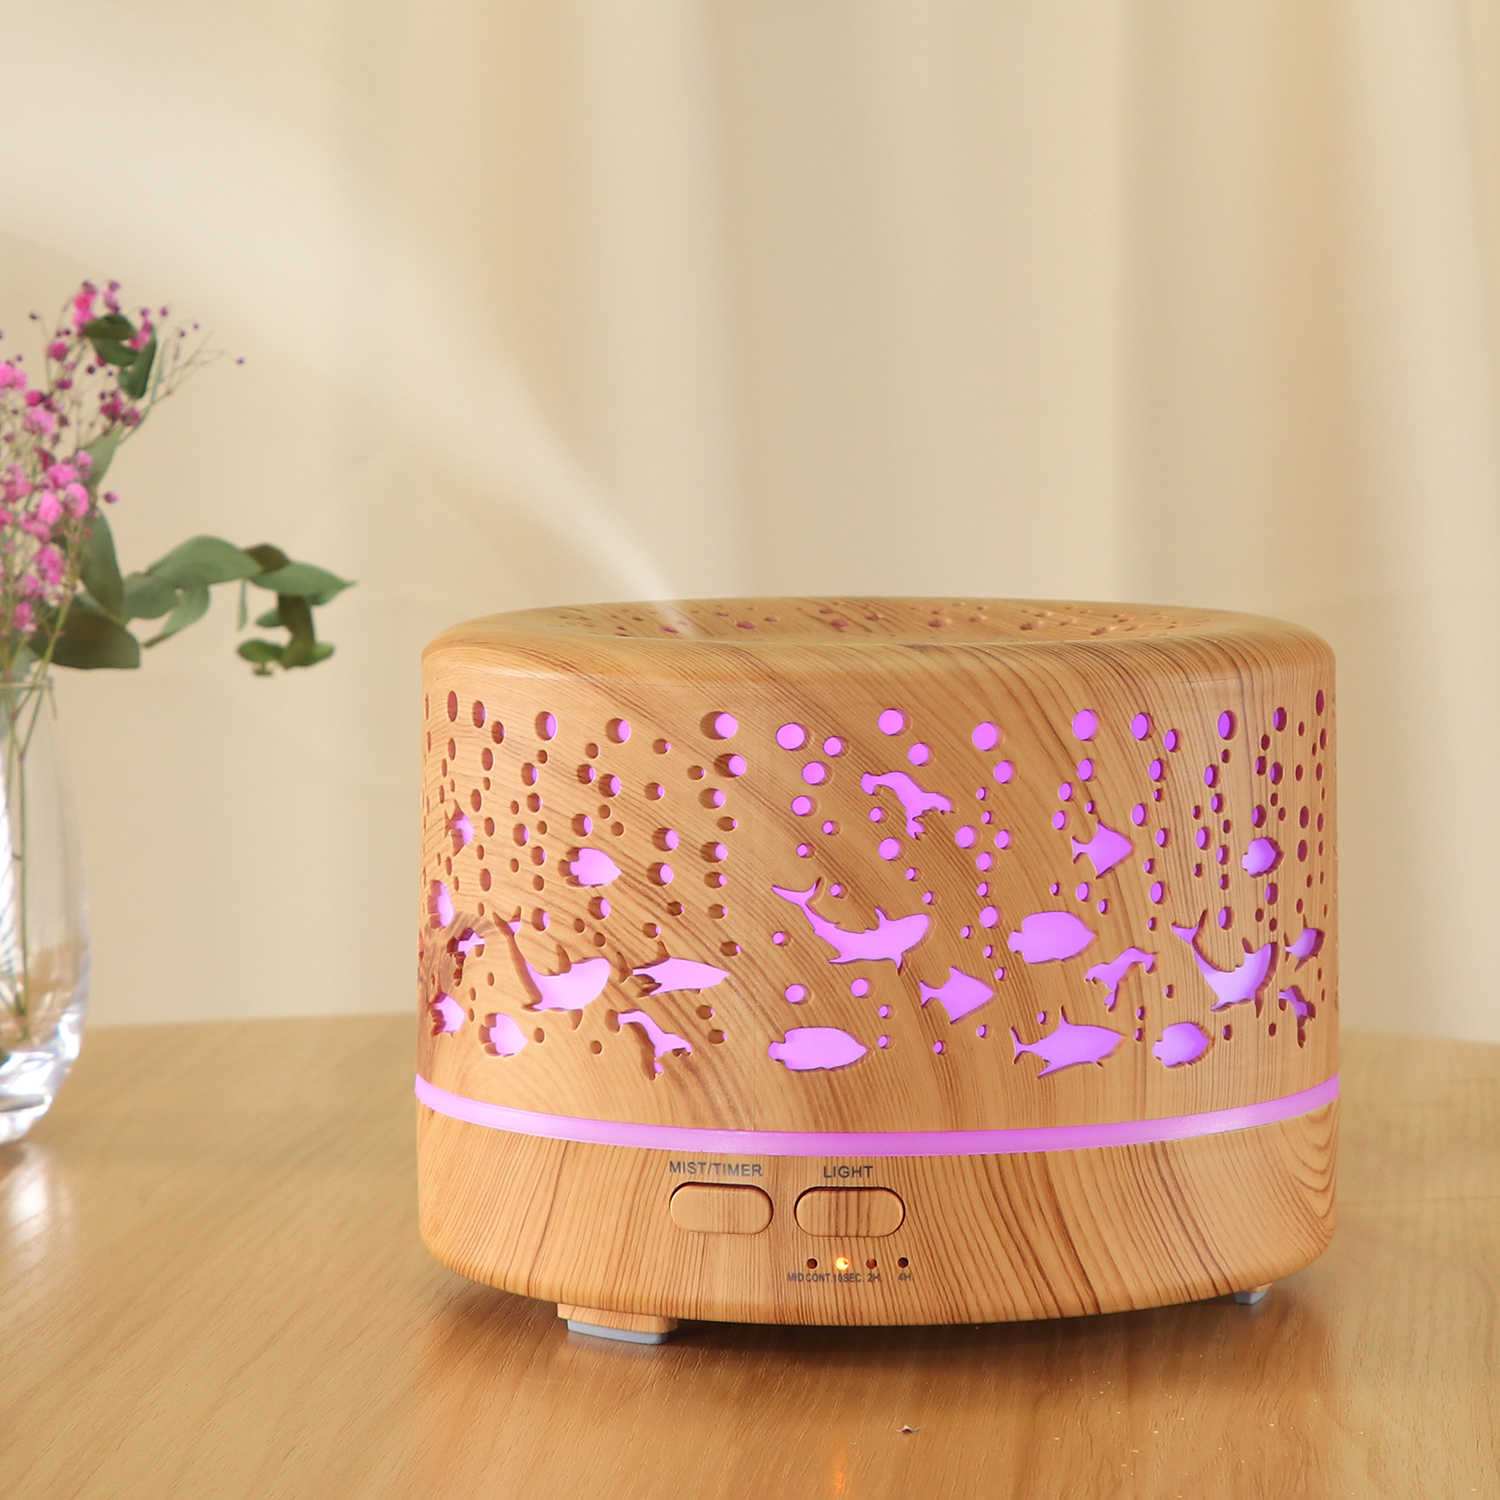 700ml Big capacity Aroma Diffuser Aromatherapy Wood Grain Essential Oil Diffuser Ultrasonic Cool Mist Humidifier for Office Home